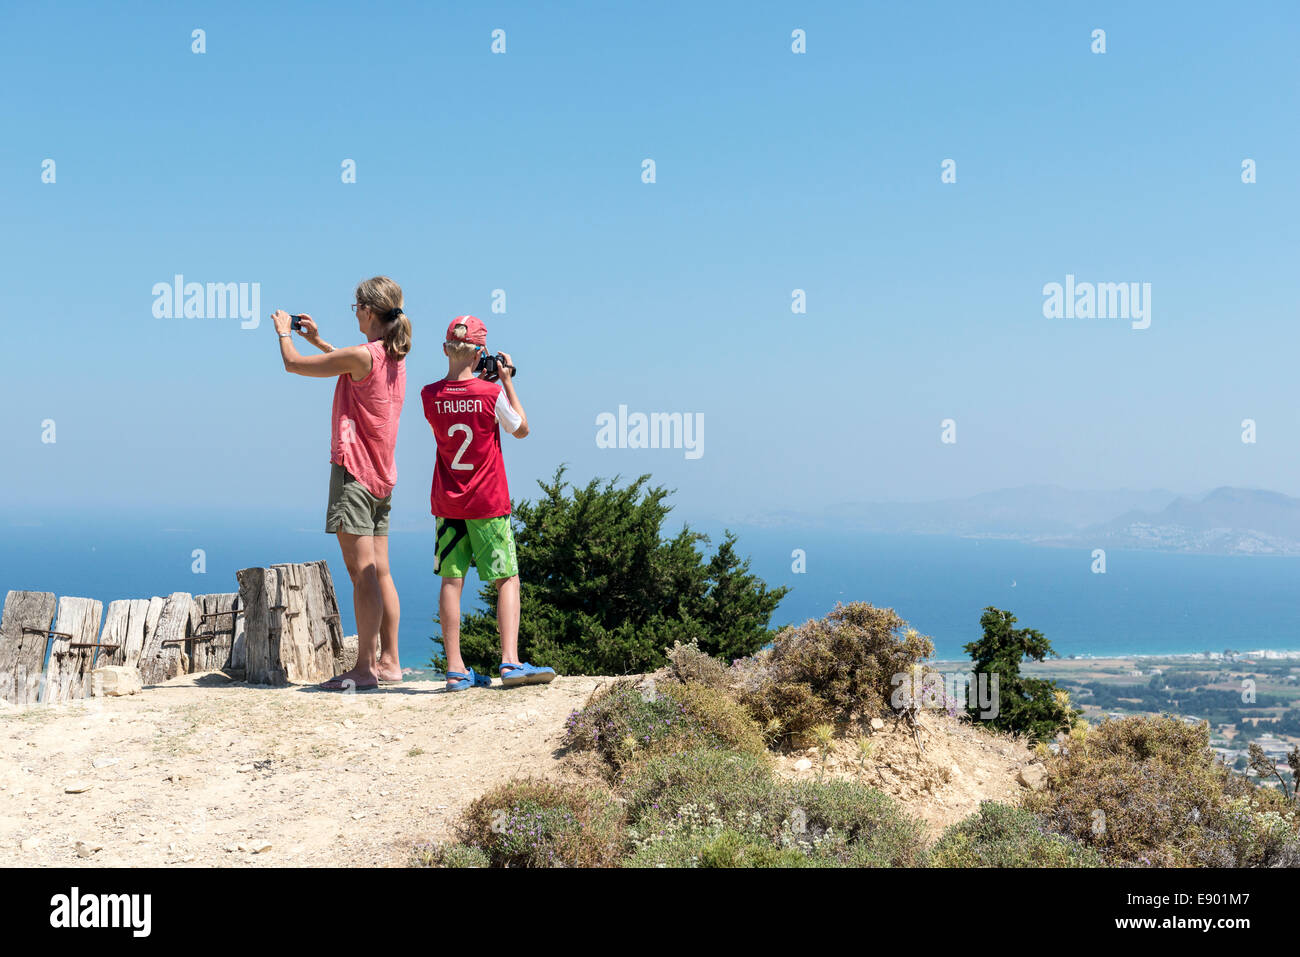 Mother and  son taking pictures from a vantage point in the mountains of Pyli, island of Kos, Greece - Stock Image